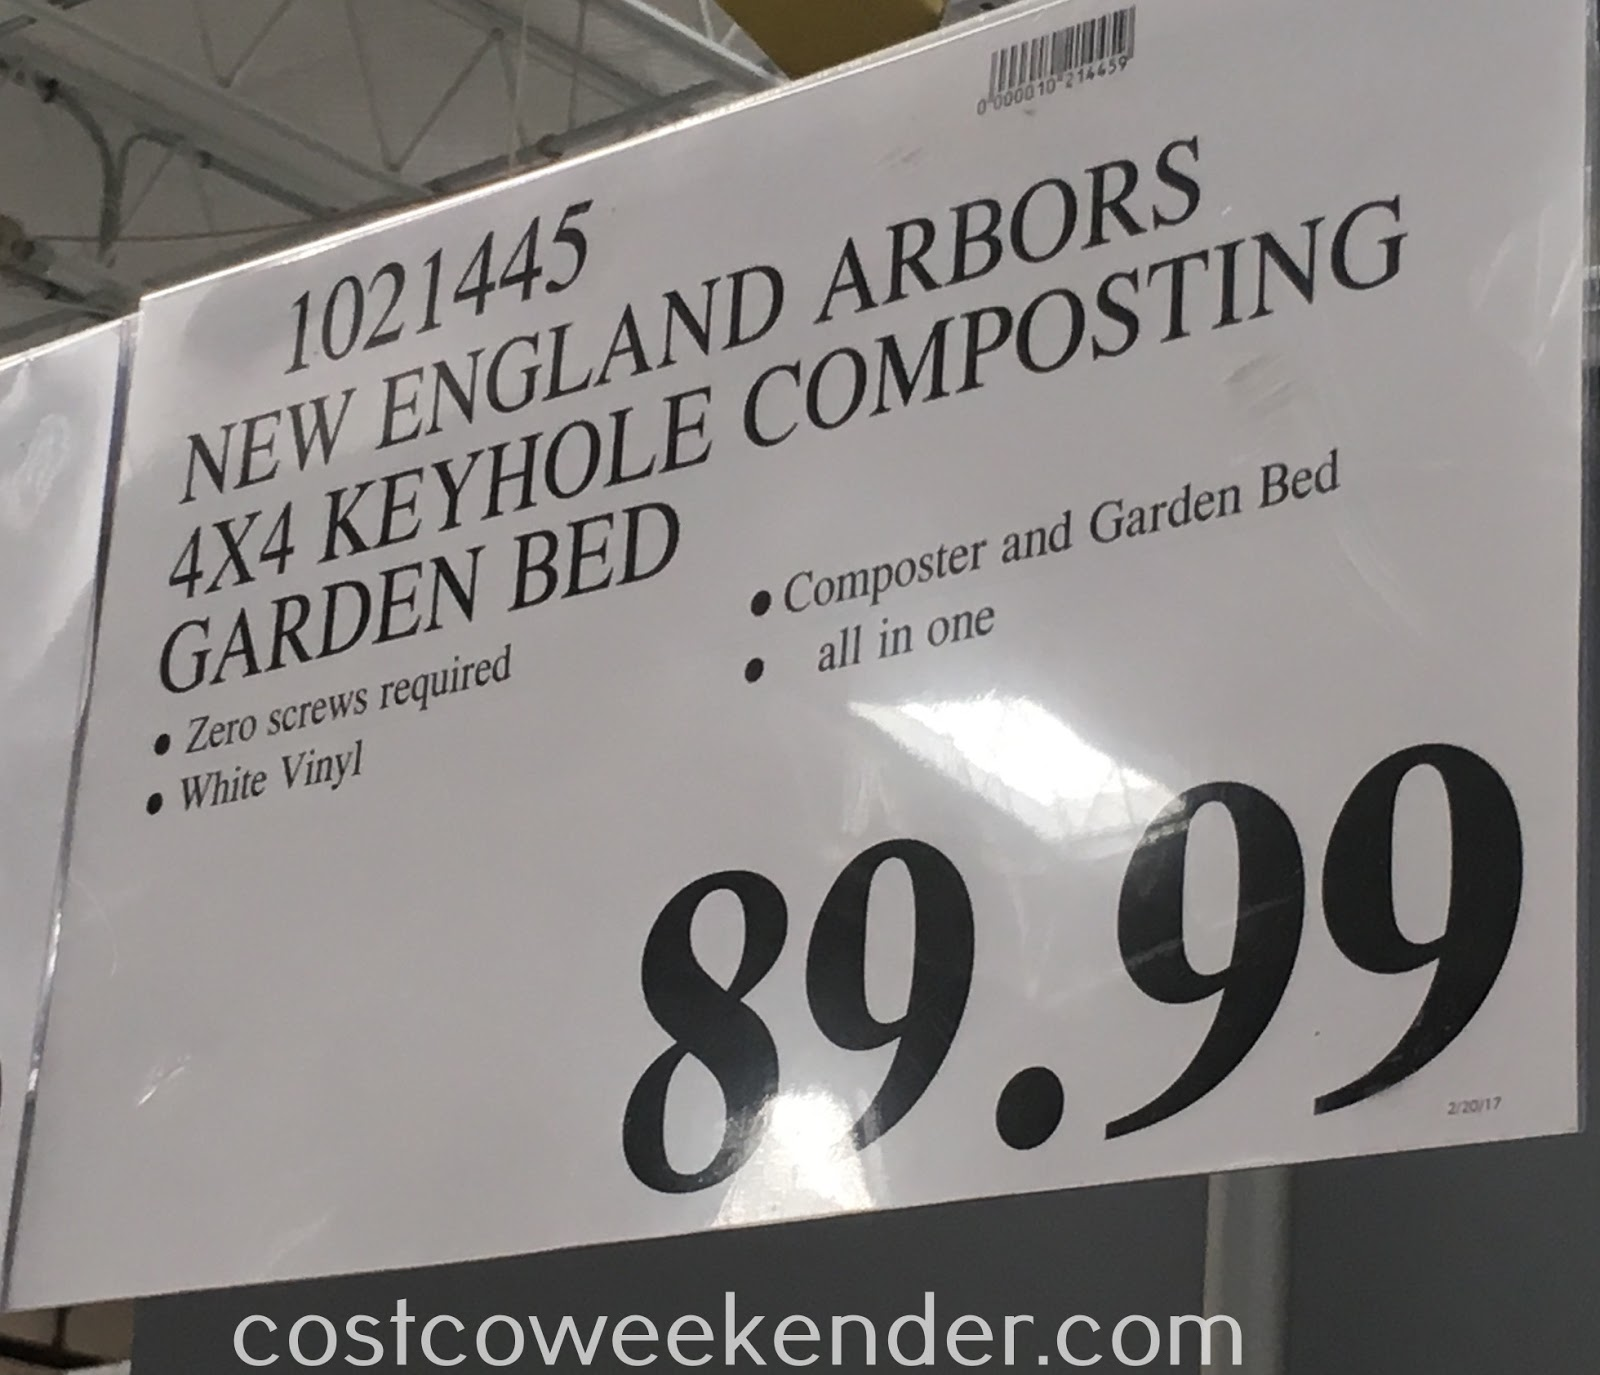 Costco 1021445 - Deal for the New England Arbors Keyhole Garden & Composter at Costco